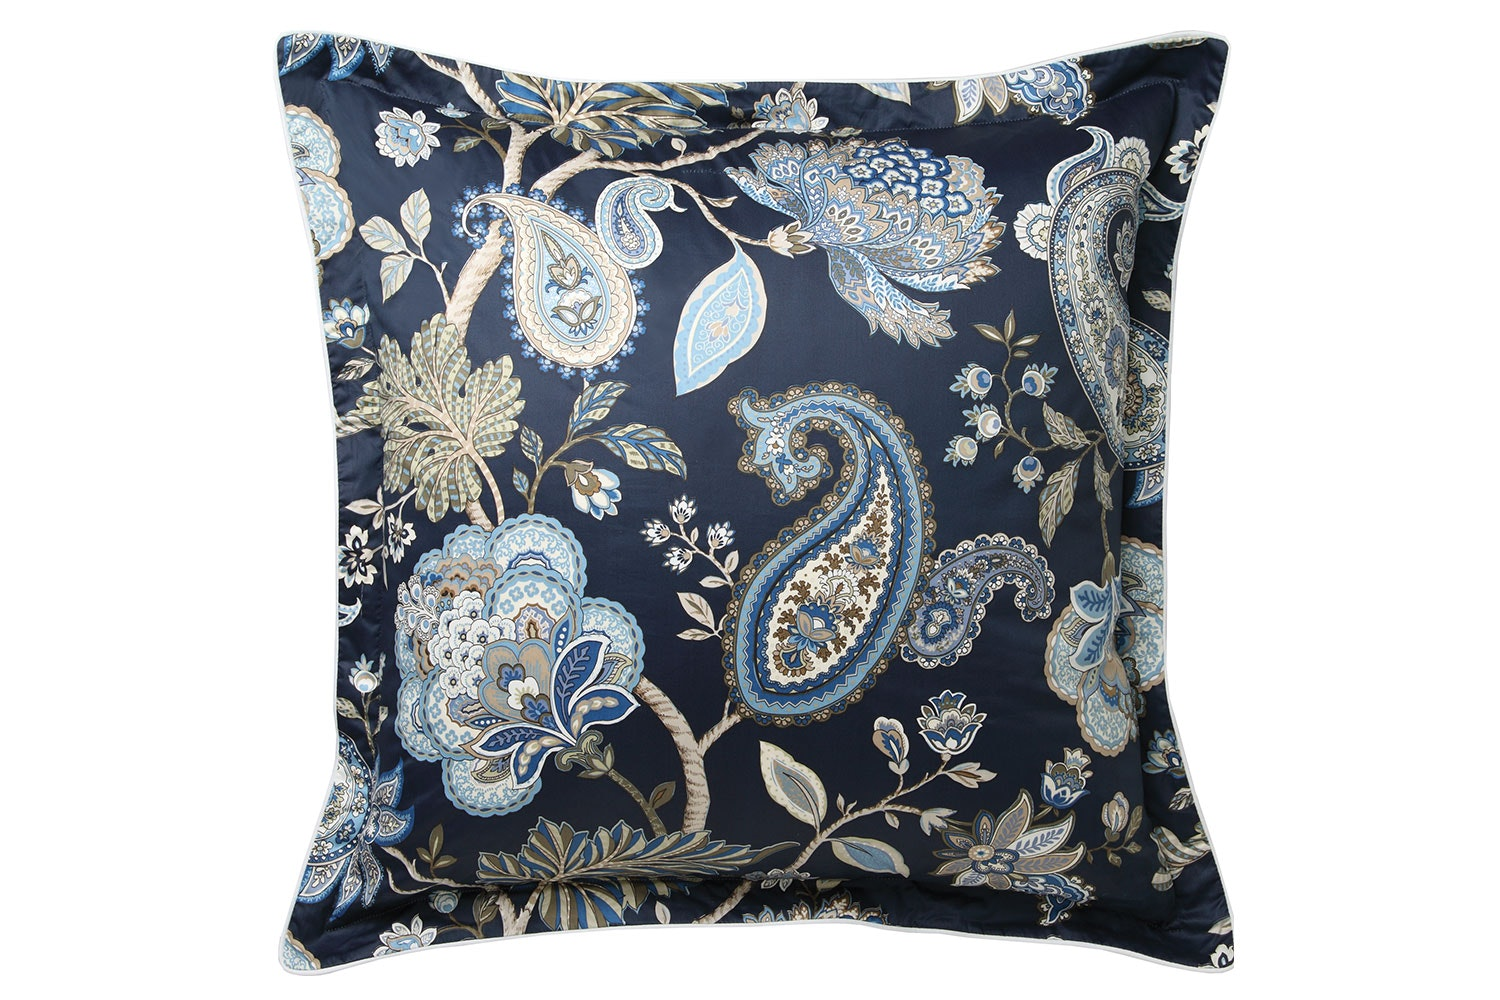 Toorak Navy Duvet Cover Set by Private Collection - European Pillowcase